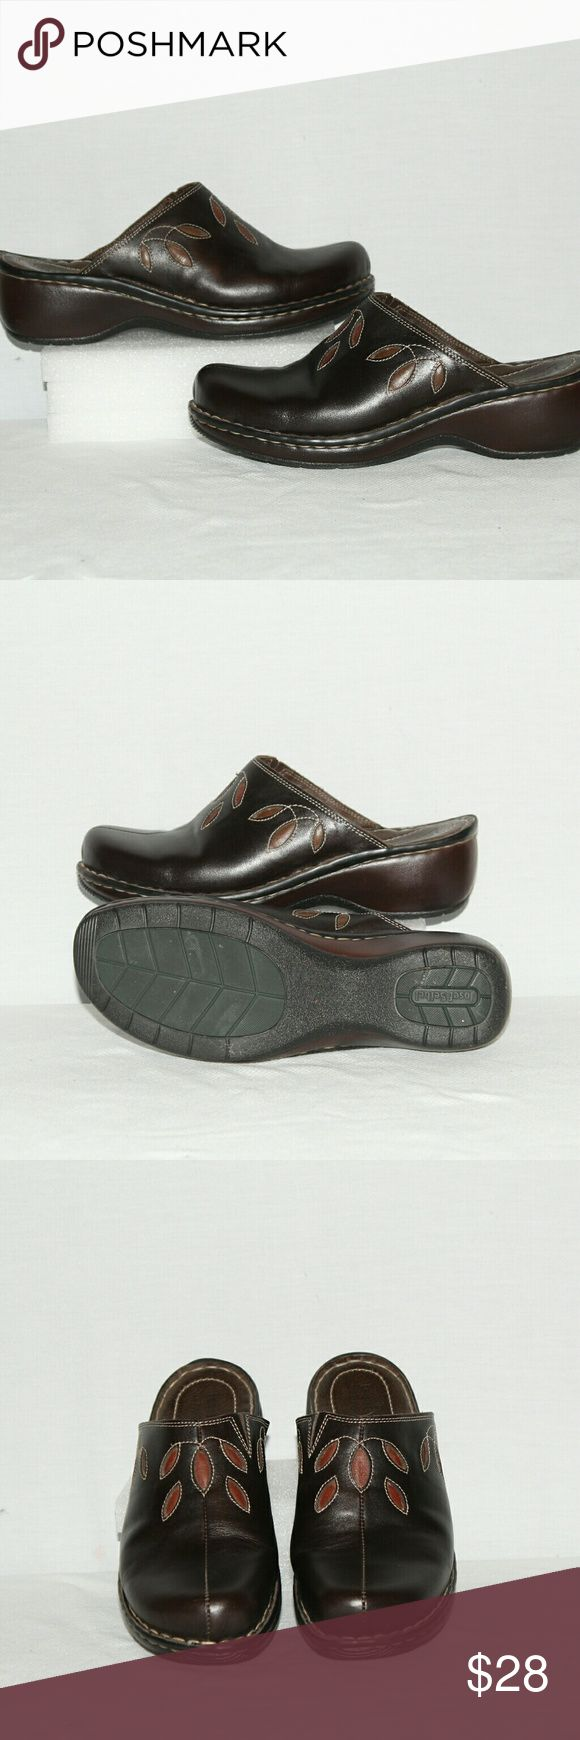 Josef Seibel Leather Clogs Josef Seibel Leather Clogs, nice gently worn clogs, clean upper and lining. No wearing on the soles. .5 inches platform with a 1.75 inch heel. Josef Seibel  Shoes Mules & Clogs